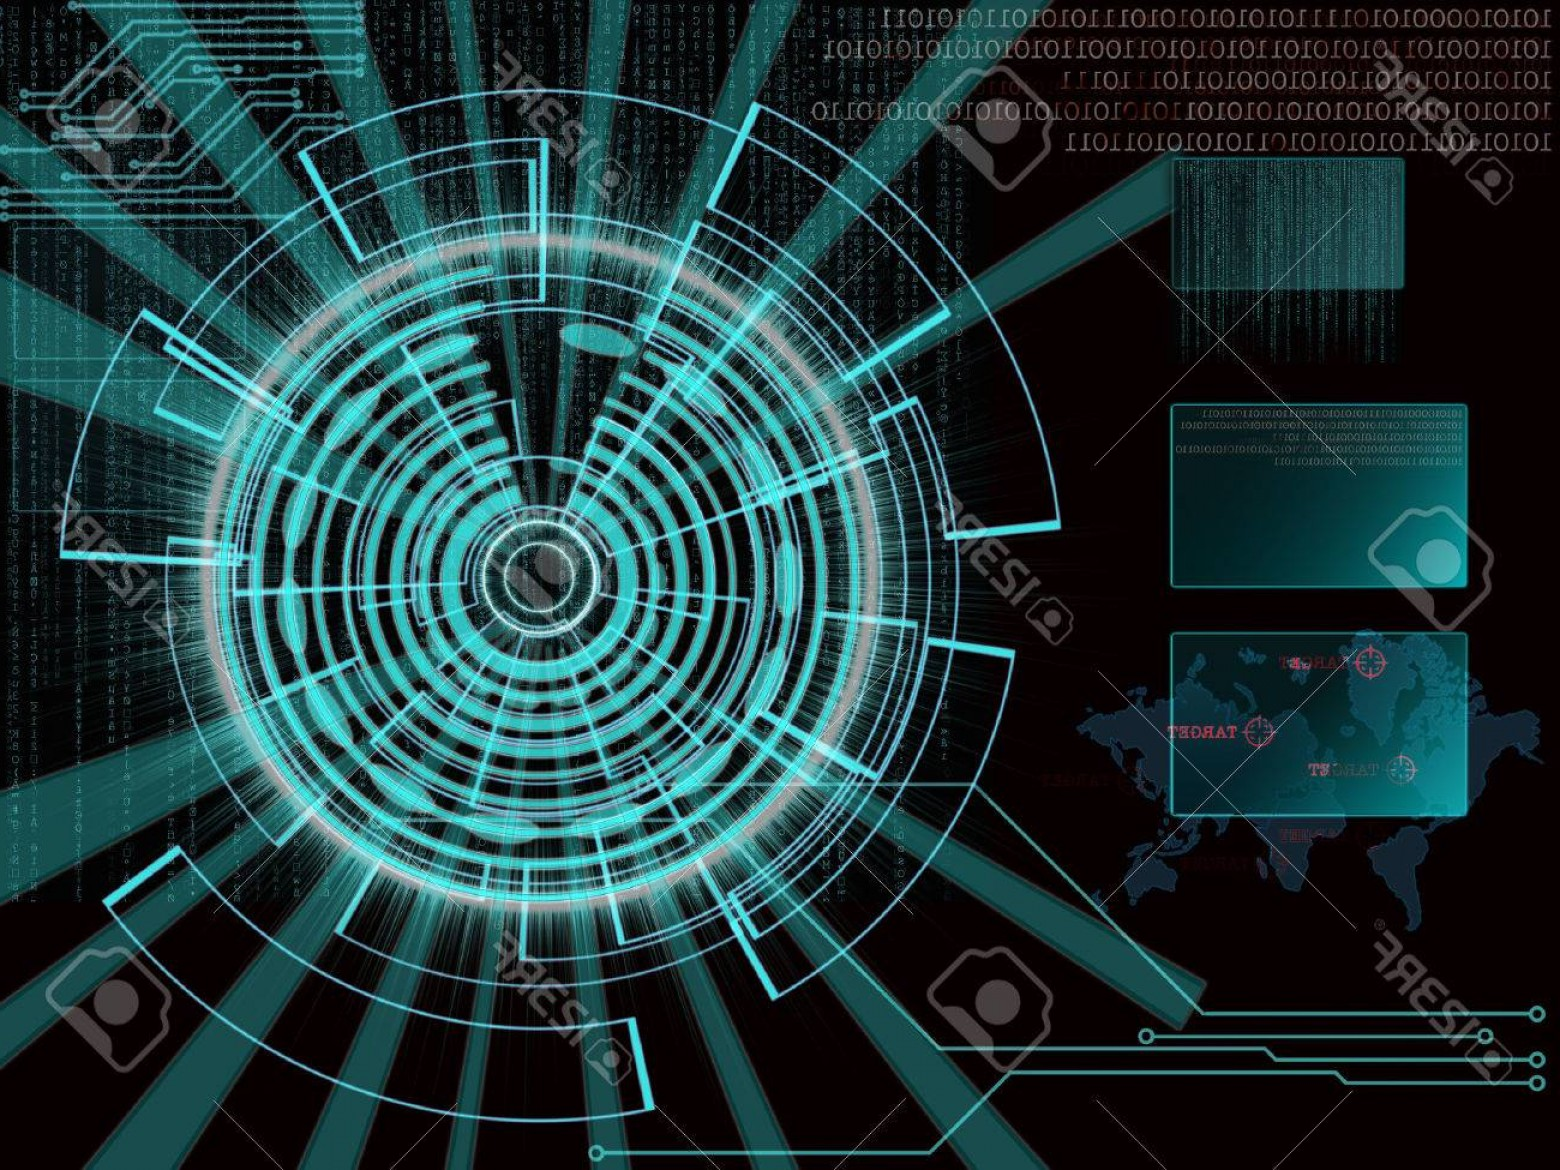 Futuristic Render Vector Graphics: Photorendering Of A Futuristic Cyber Background Target With Laser Light Effect